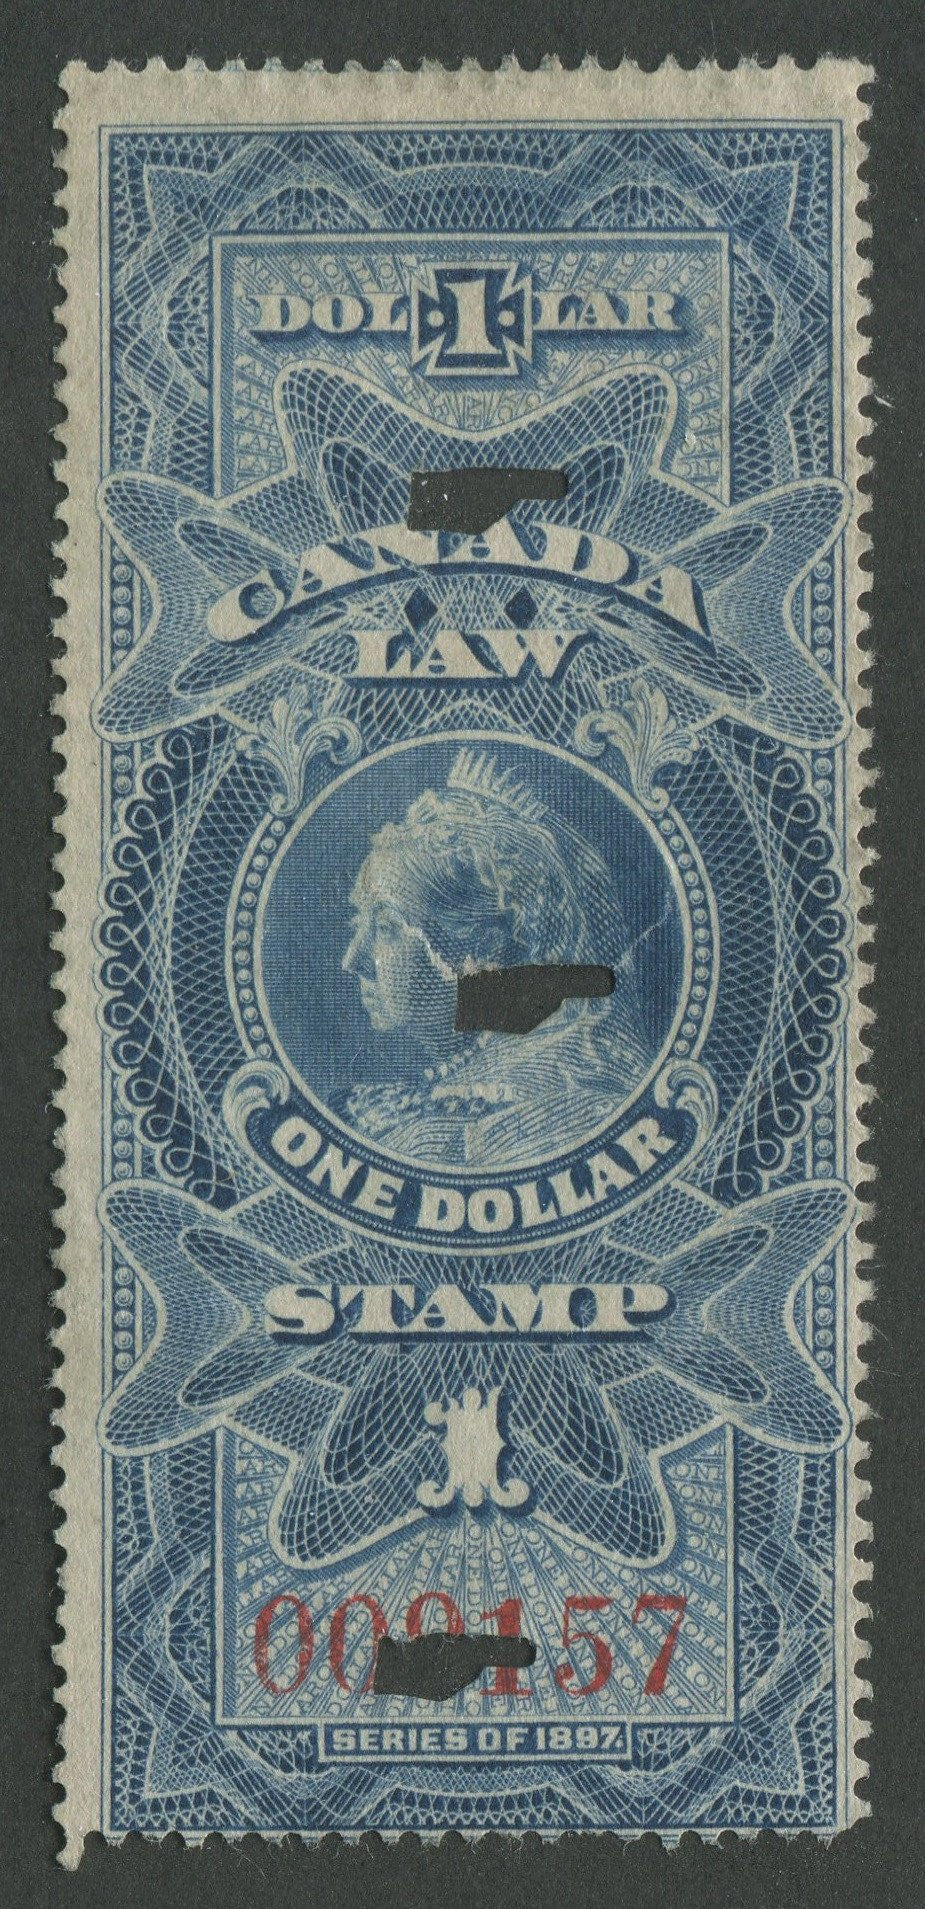 0008SC1707 - FSC8 - Used - UNLISTED - Deveney Stamps Ltd. Canadian Stamps